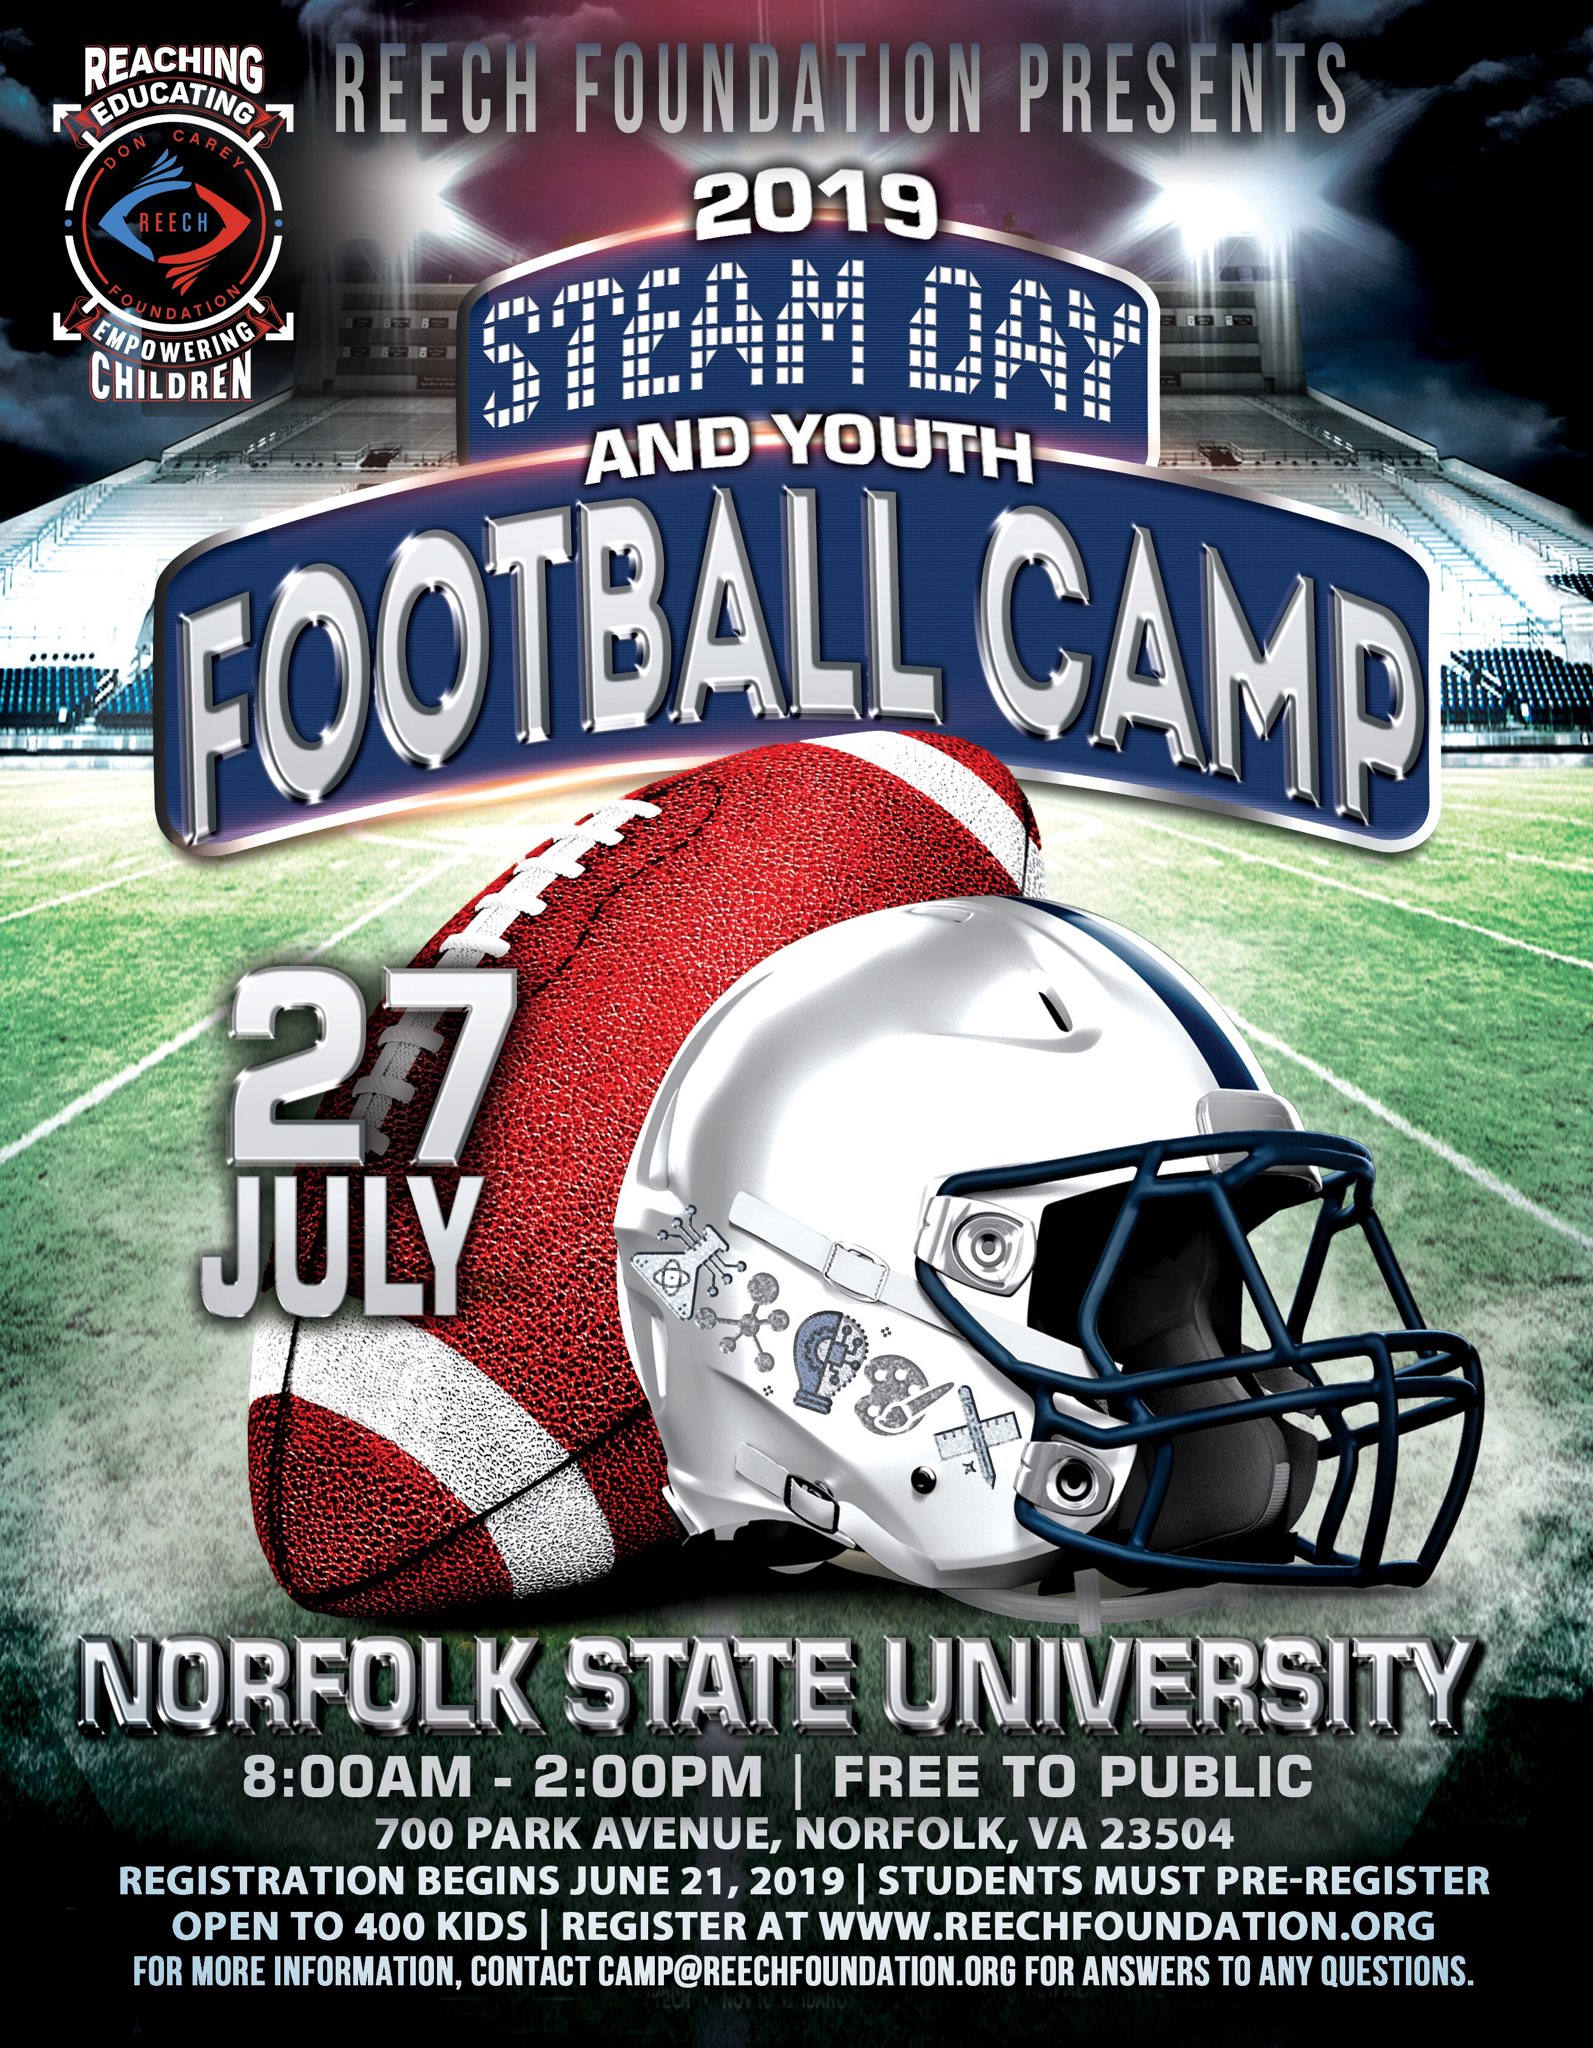 Free STEAM day & Football Camp